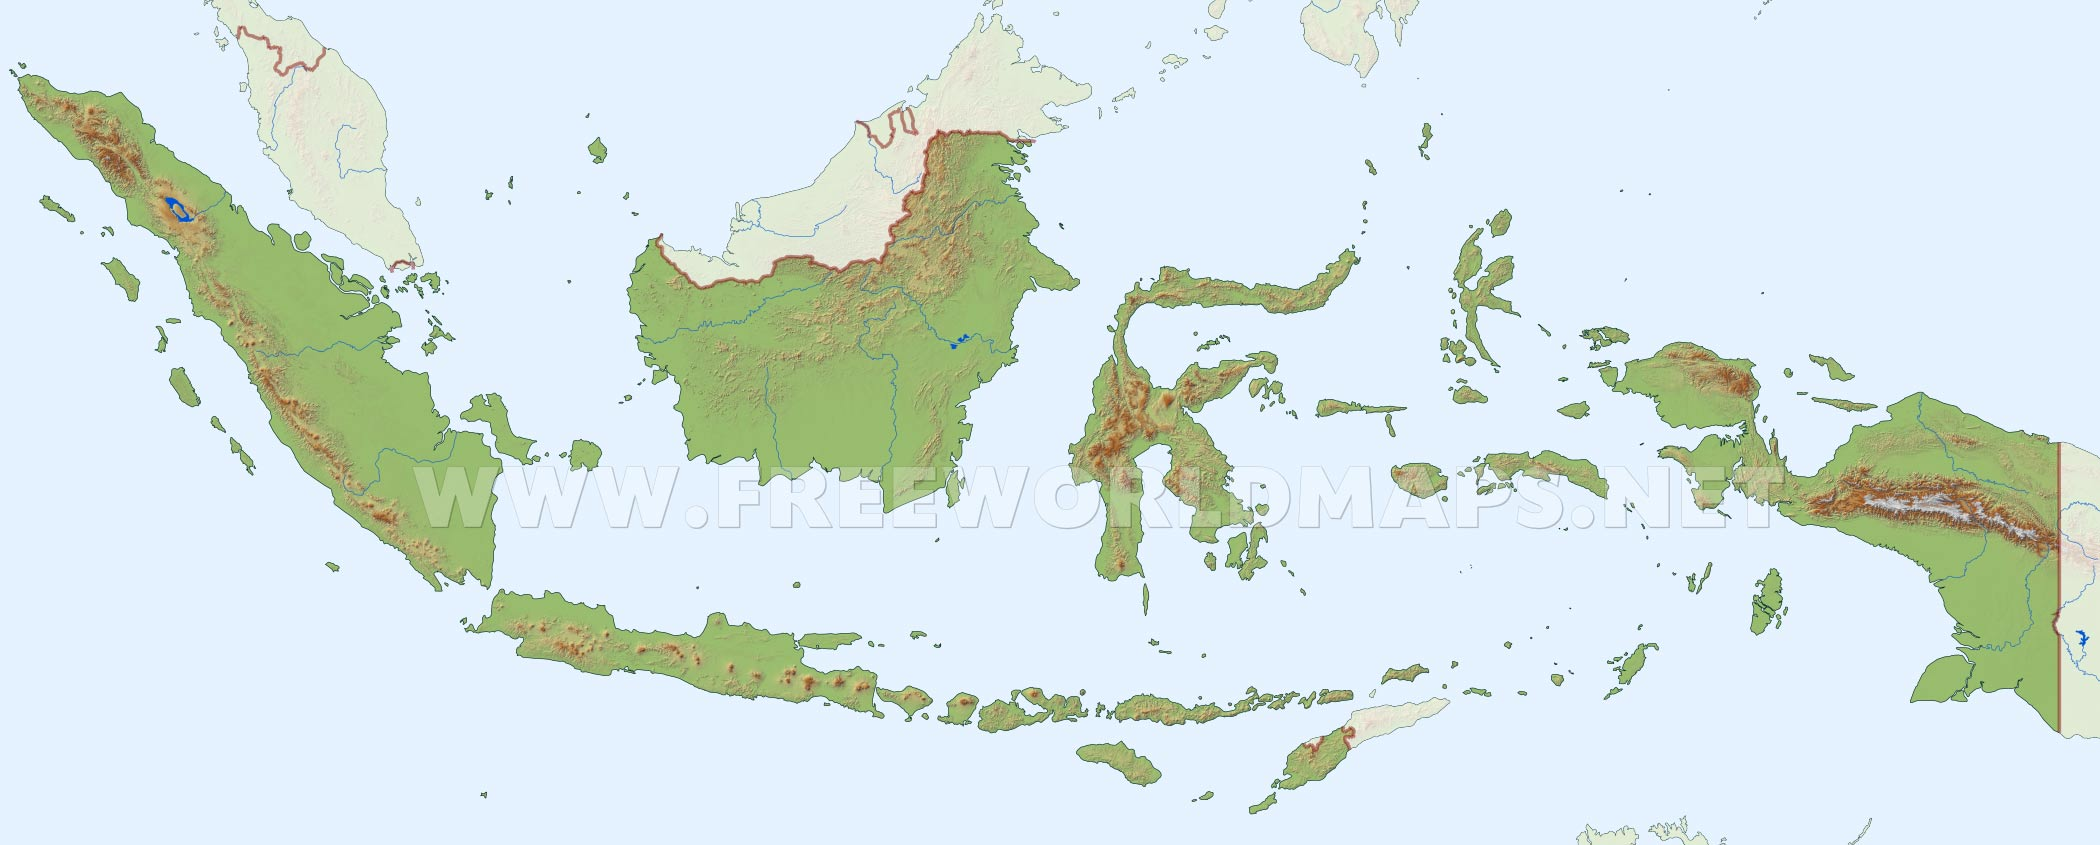 Indonesia physical map indonesia indonesia hd map gumiabroncs